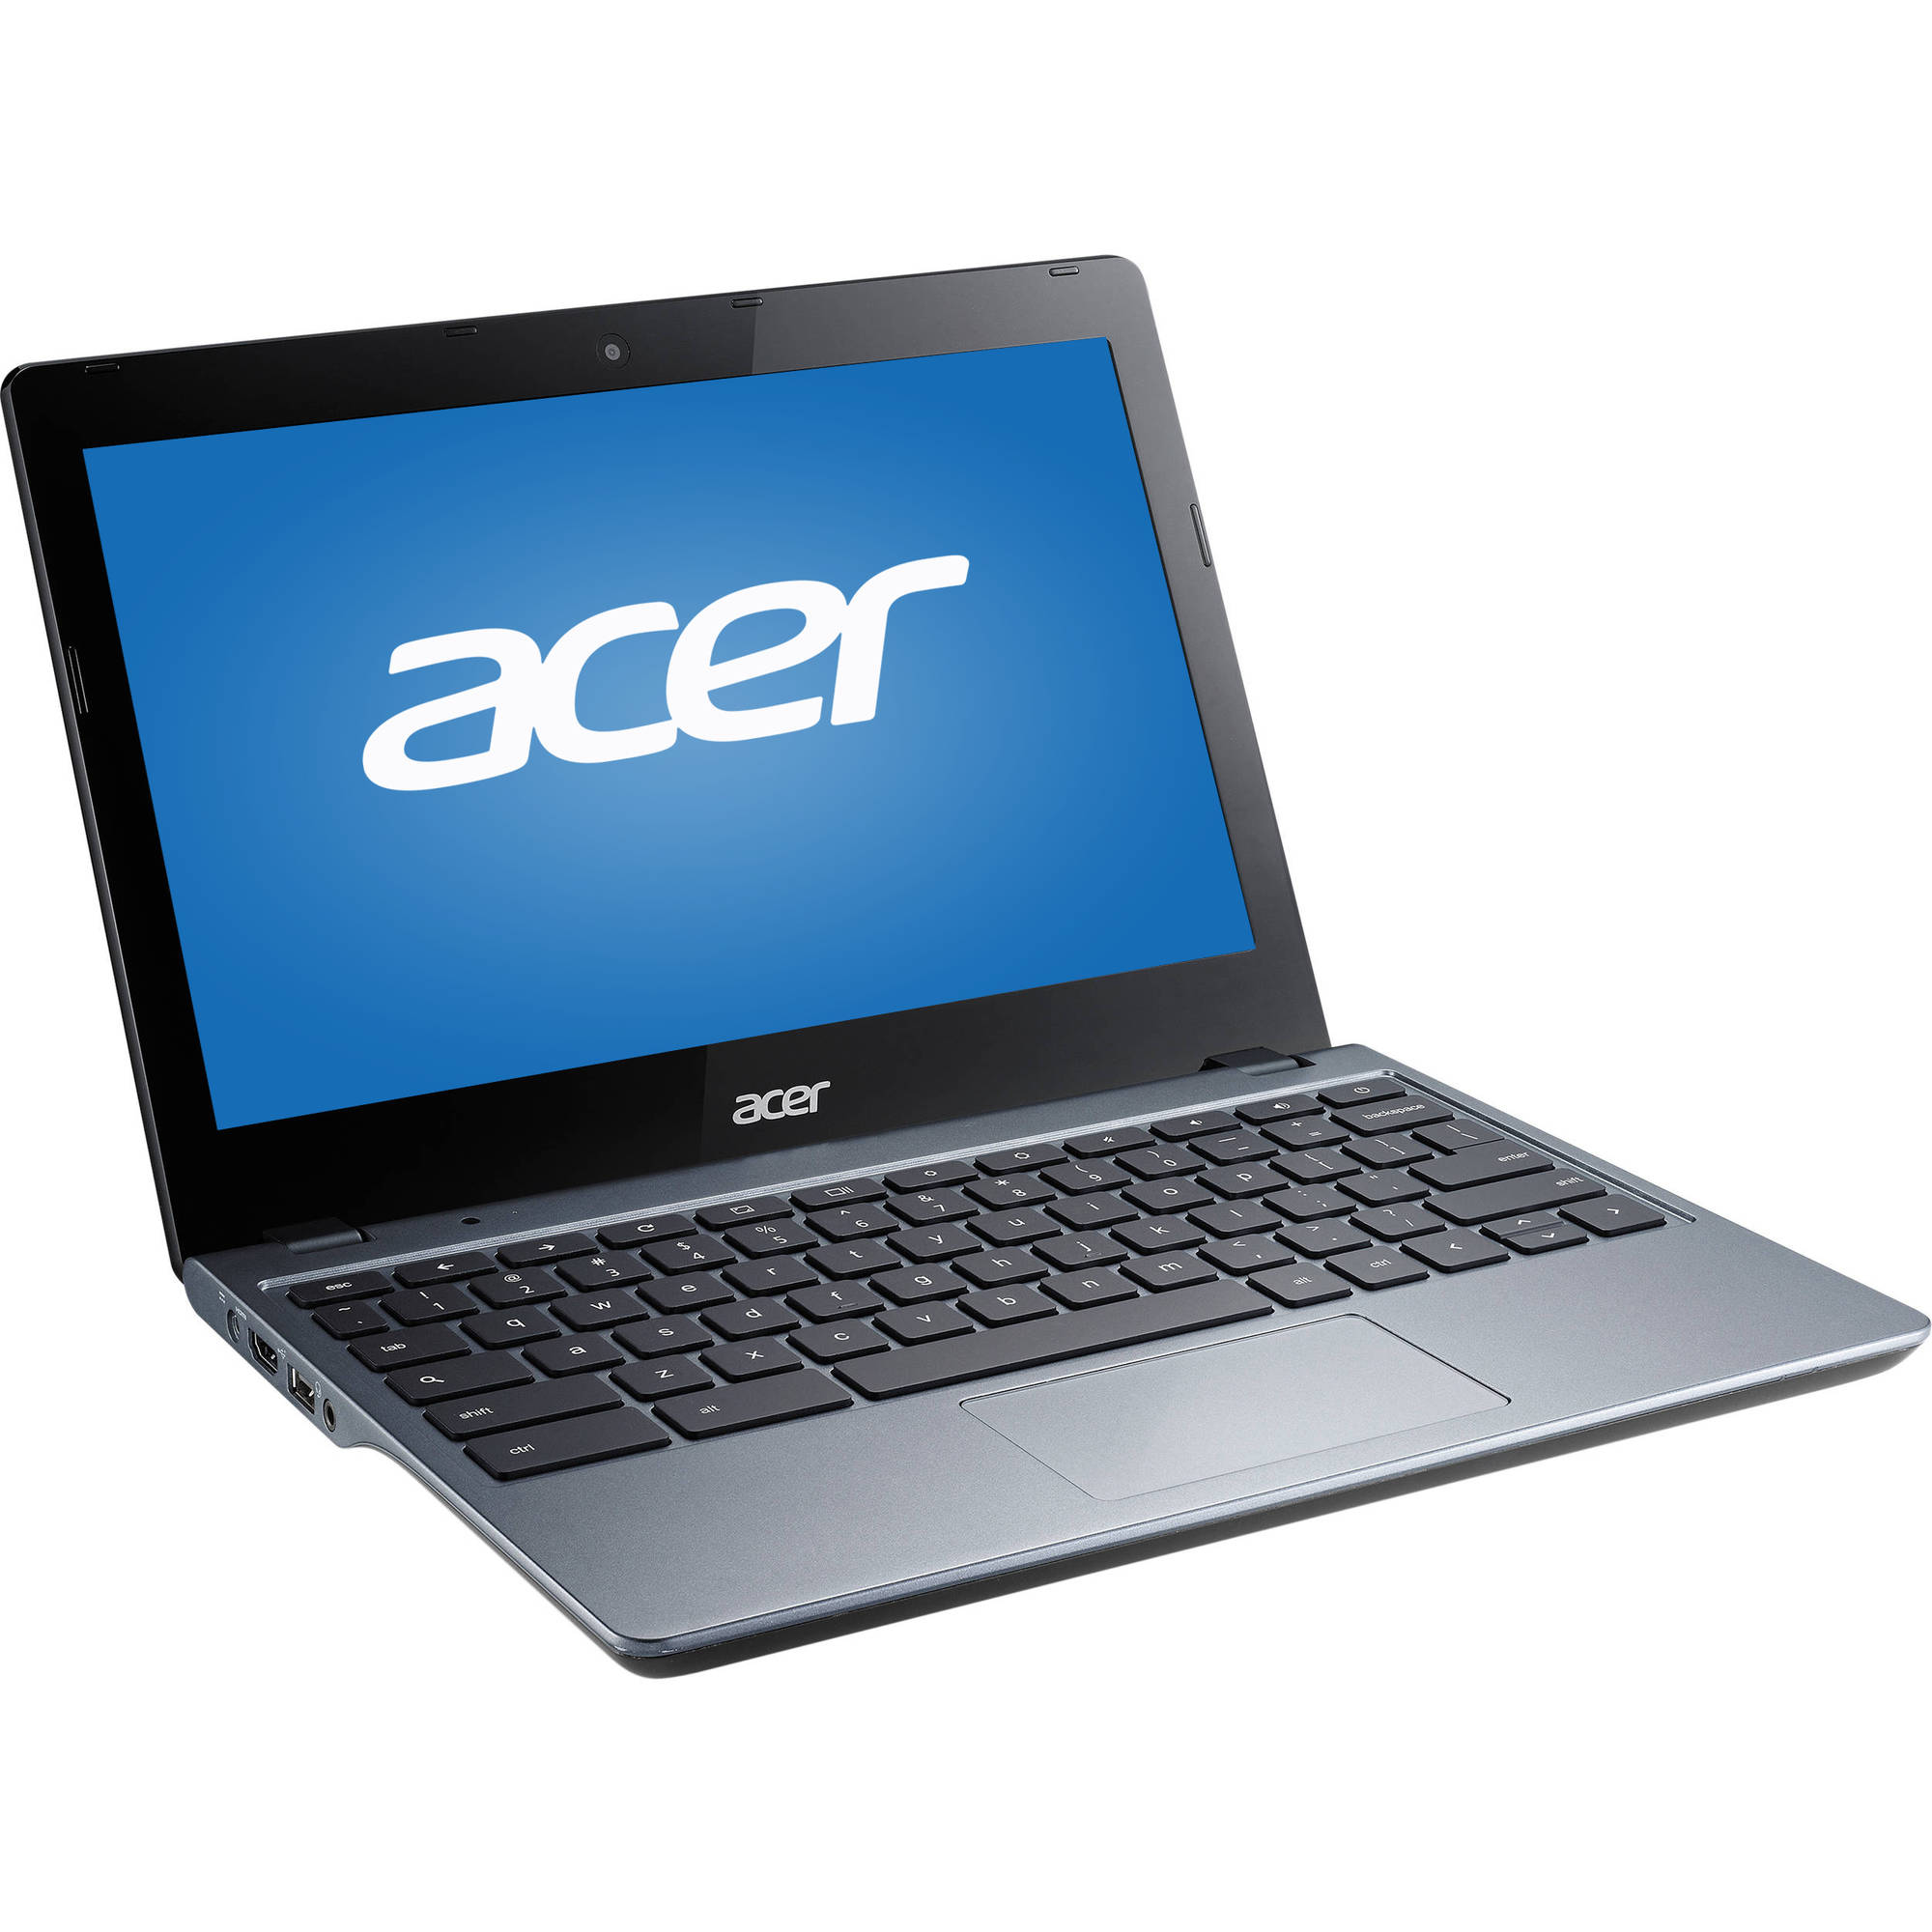 "Refurbished Acer C720P-2625 11.6"" Chromebook, Touchscreen, Chrome, Intel Celeron 2955U Dual-Core Processor, 4GB RAM, 16GB Flash Drive"